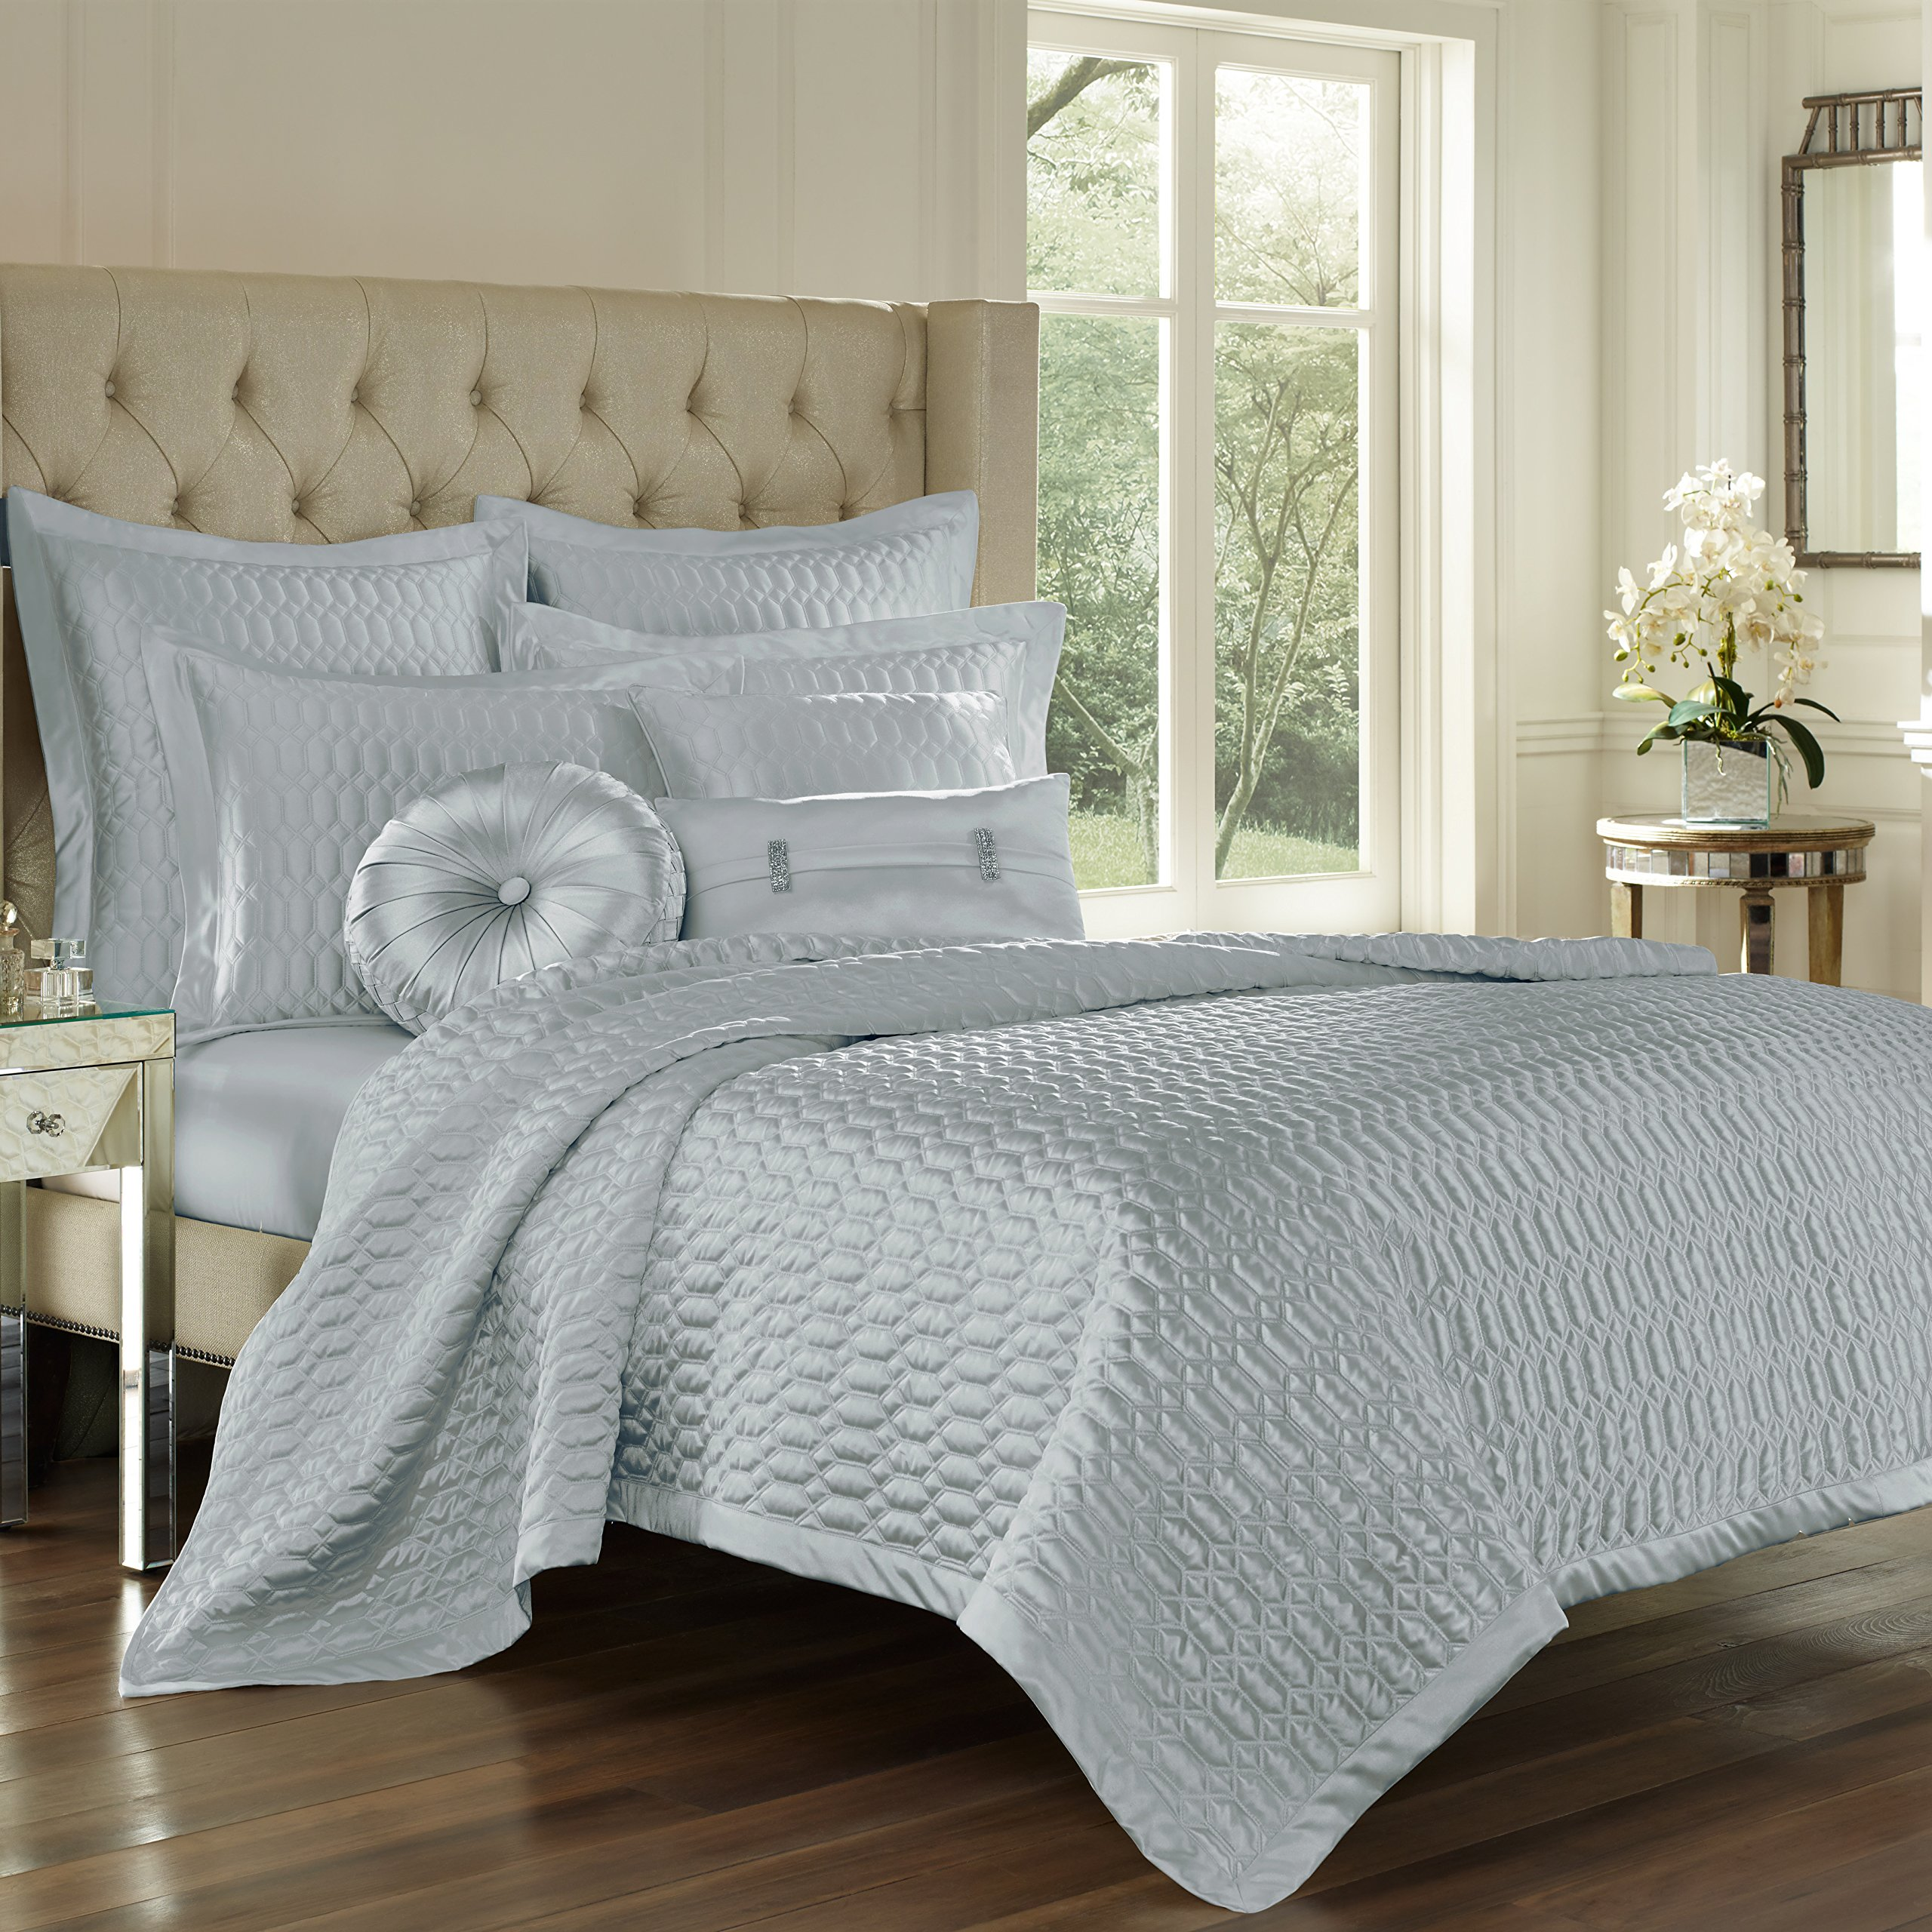 Five Queens Court Saranda Satin Geometric Quilted Coverlet King, Spa